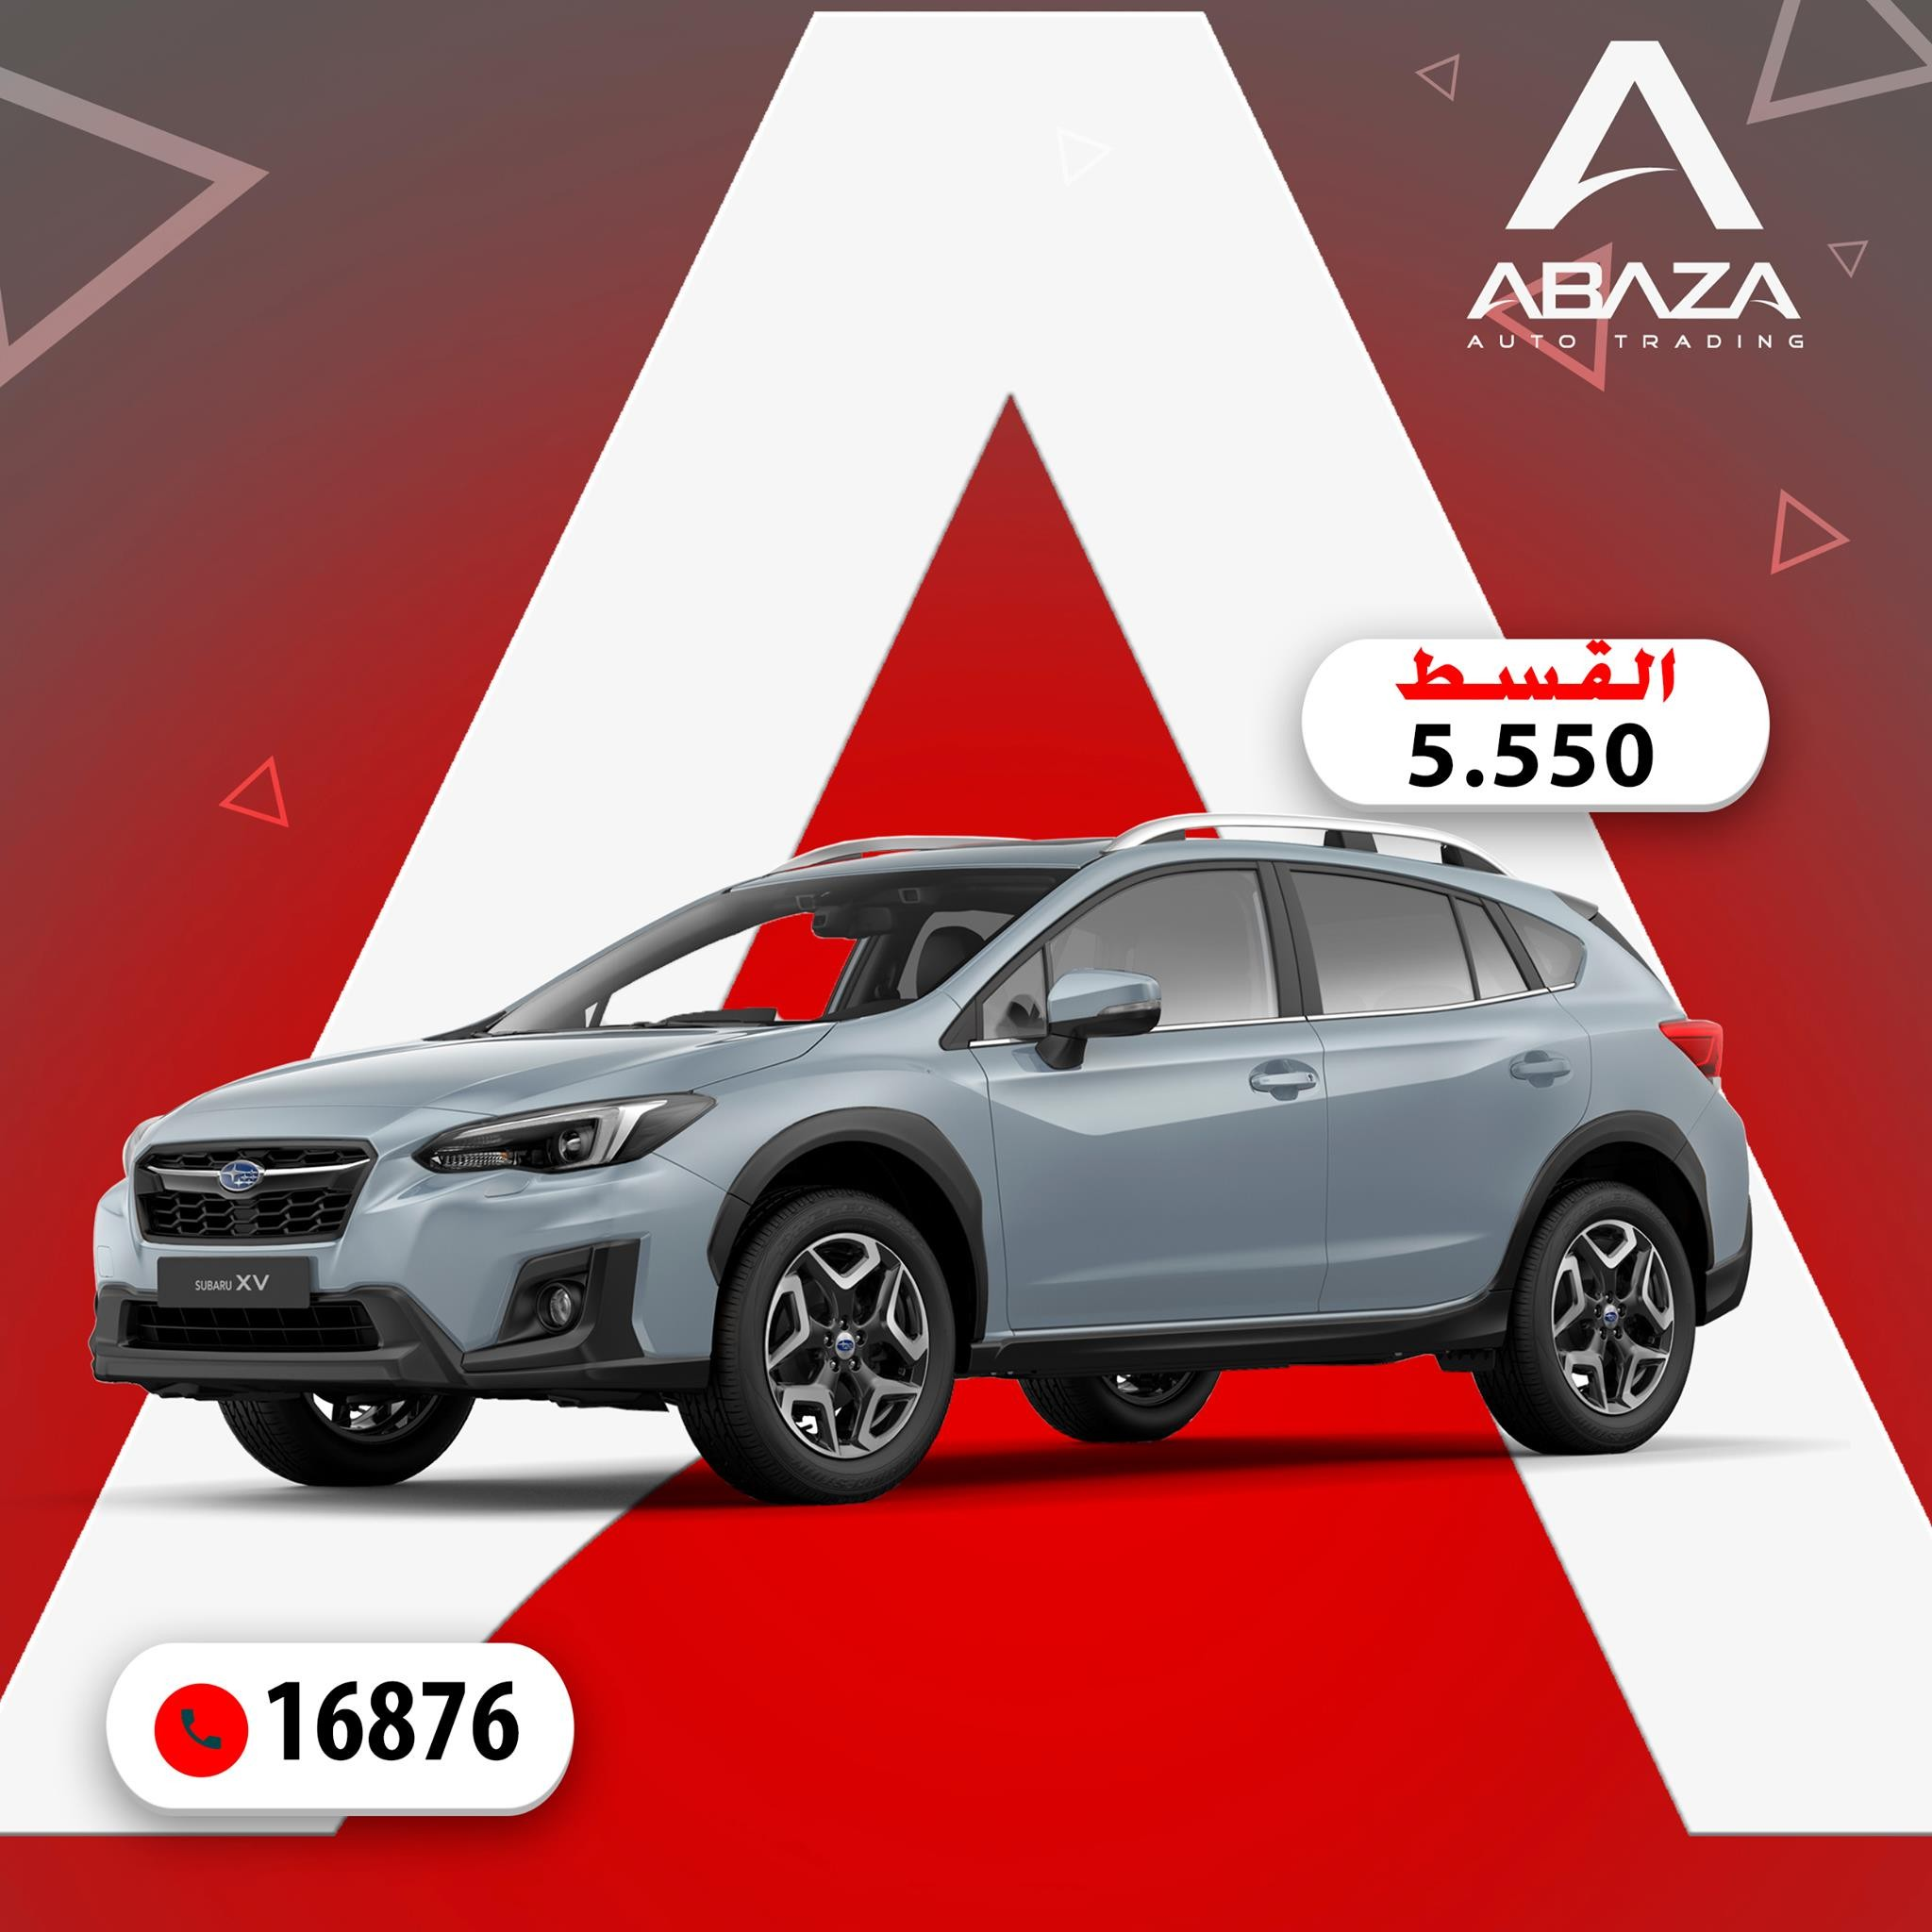 Buy Subaru xv with an installment Starting From 5.550